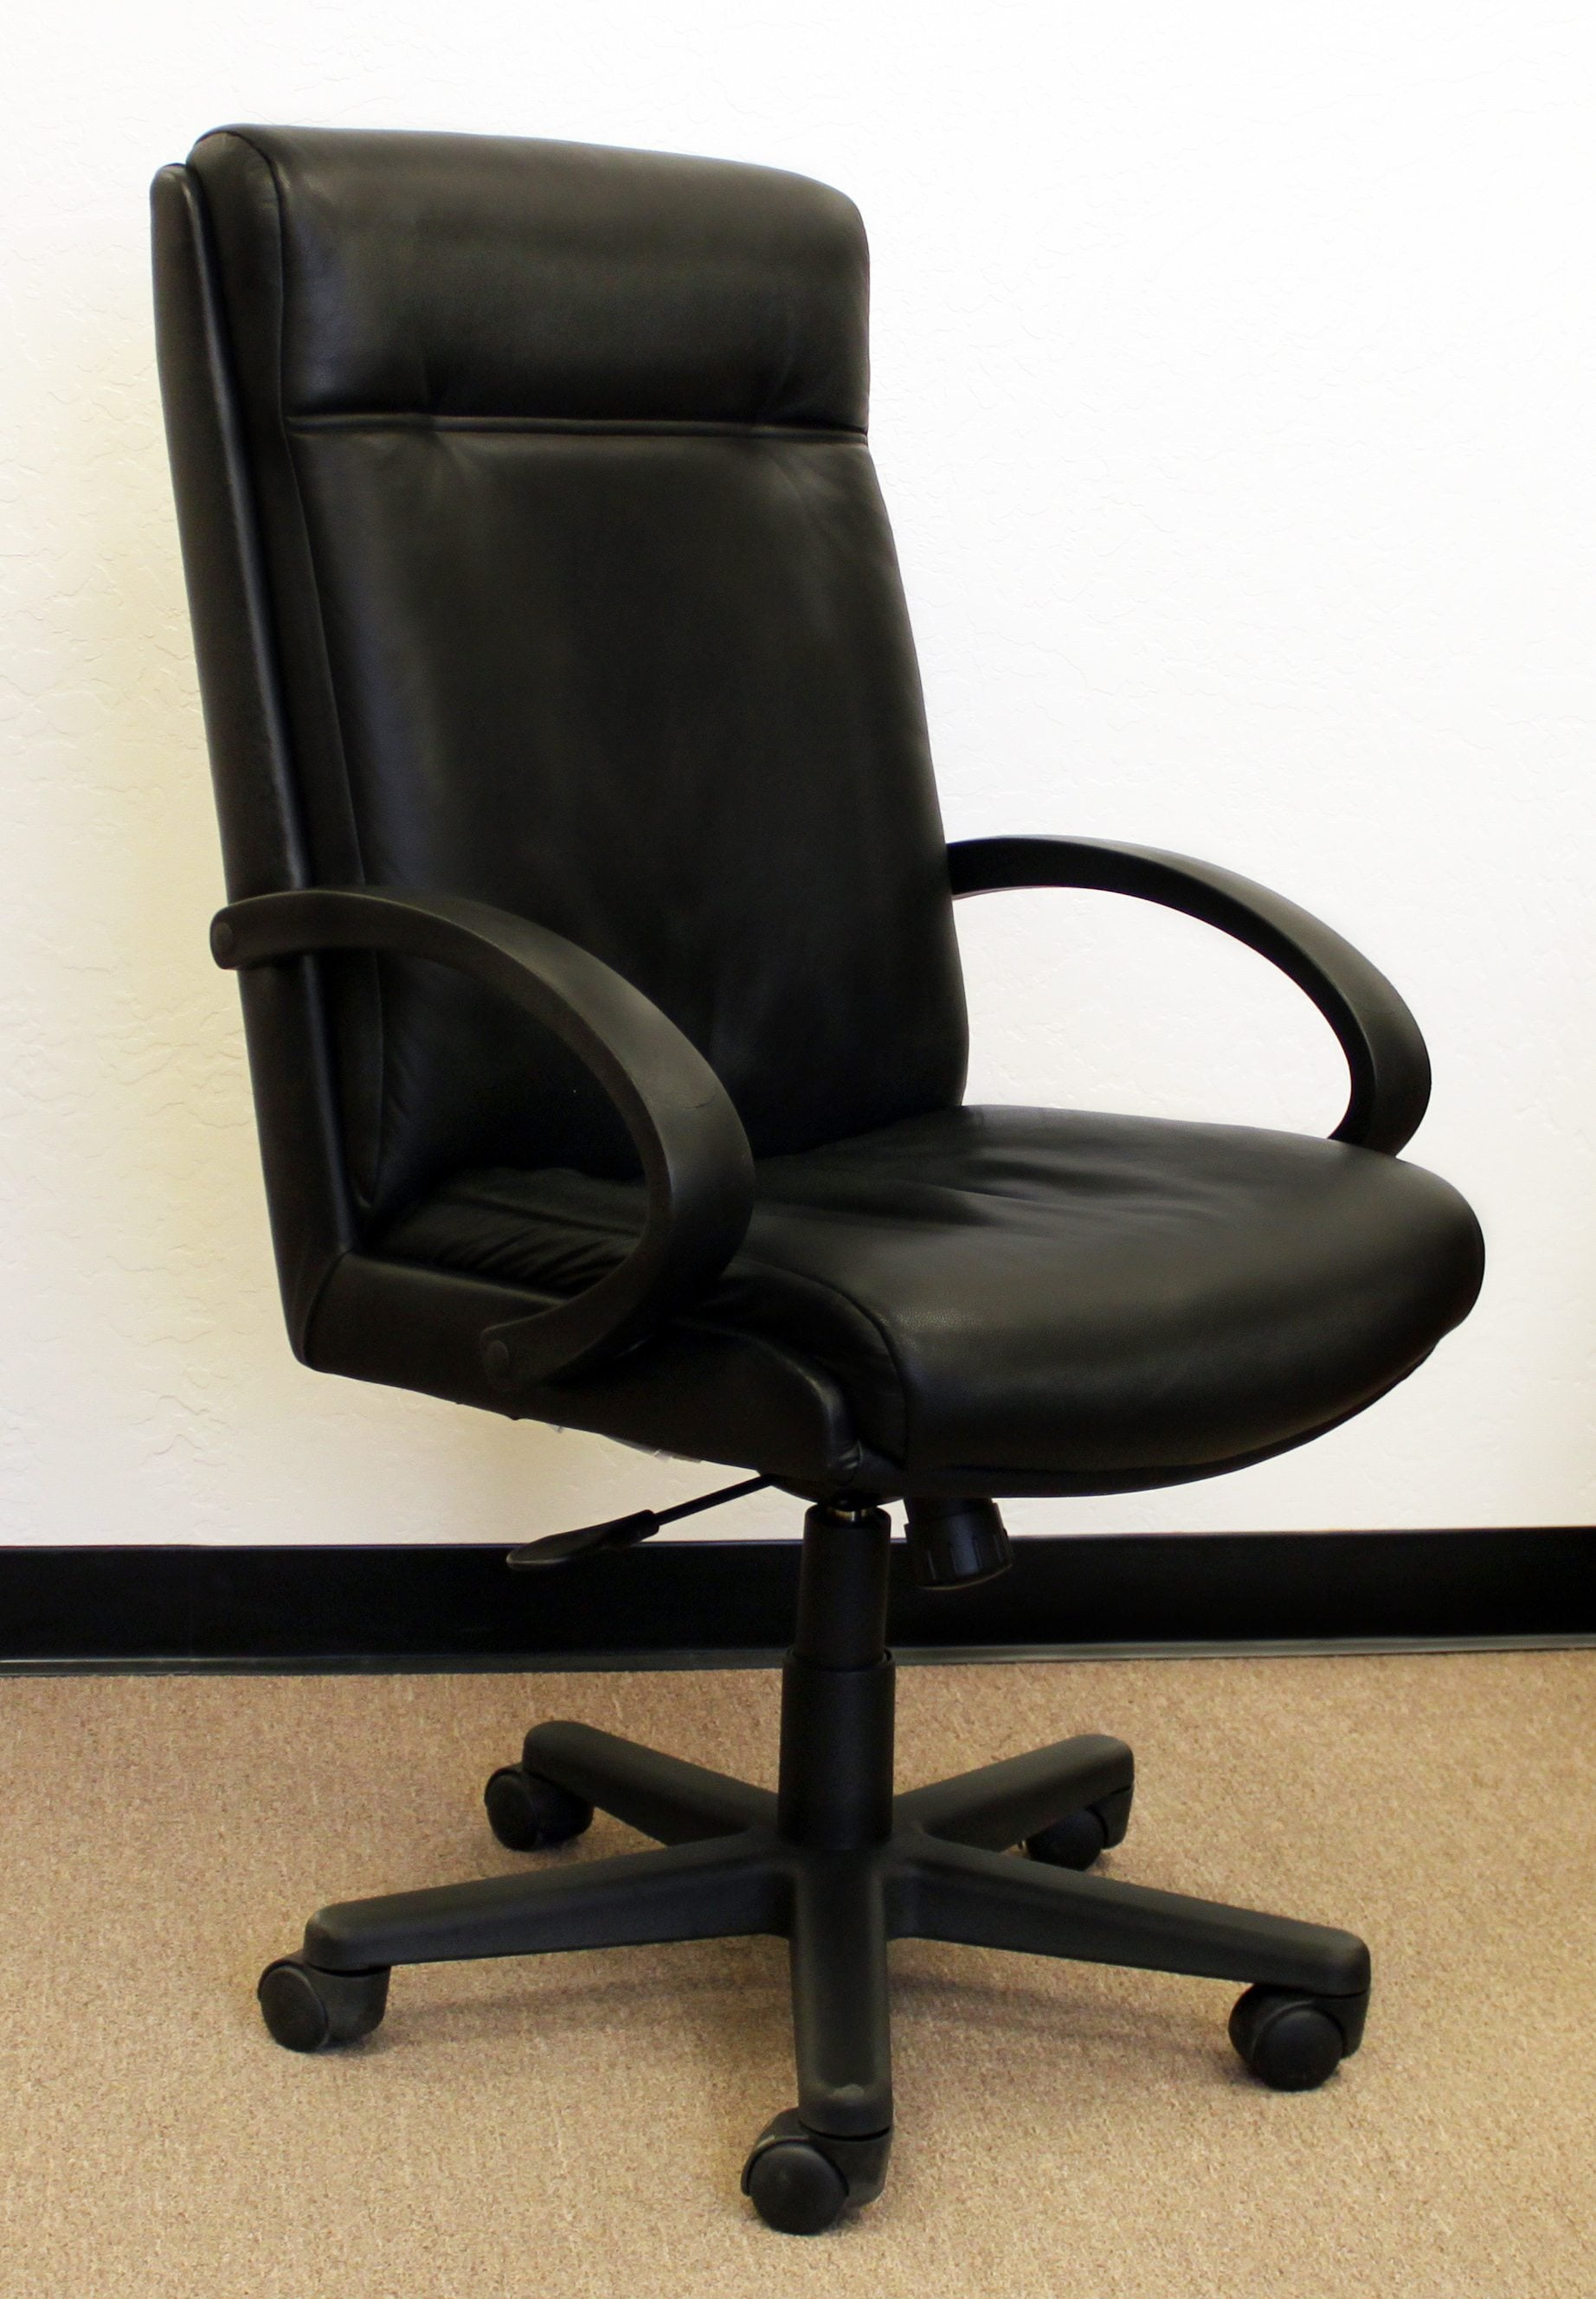 Steelcase Turnstone Executive 319 Used High Back Chair